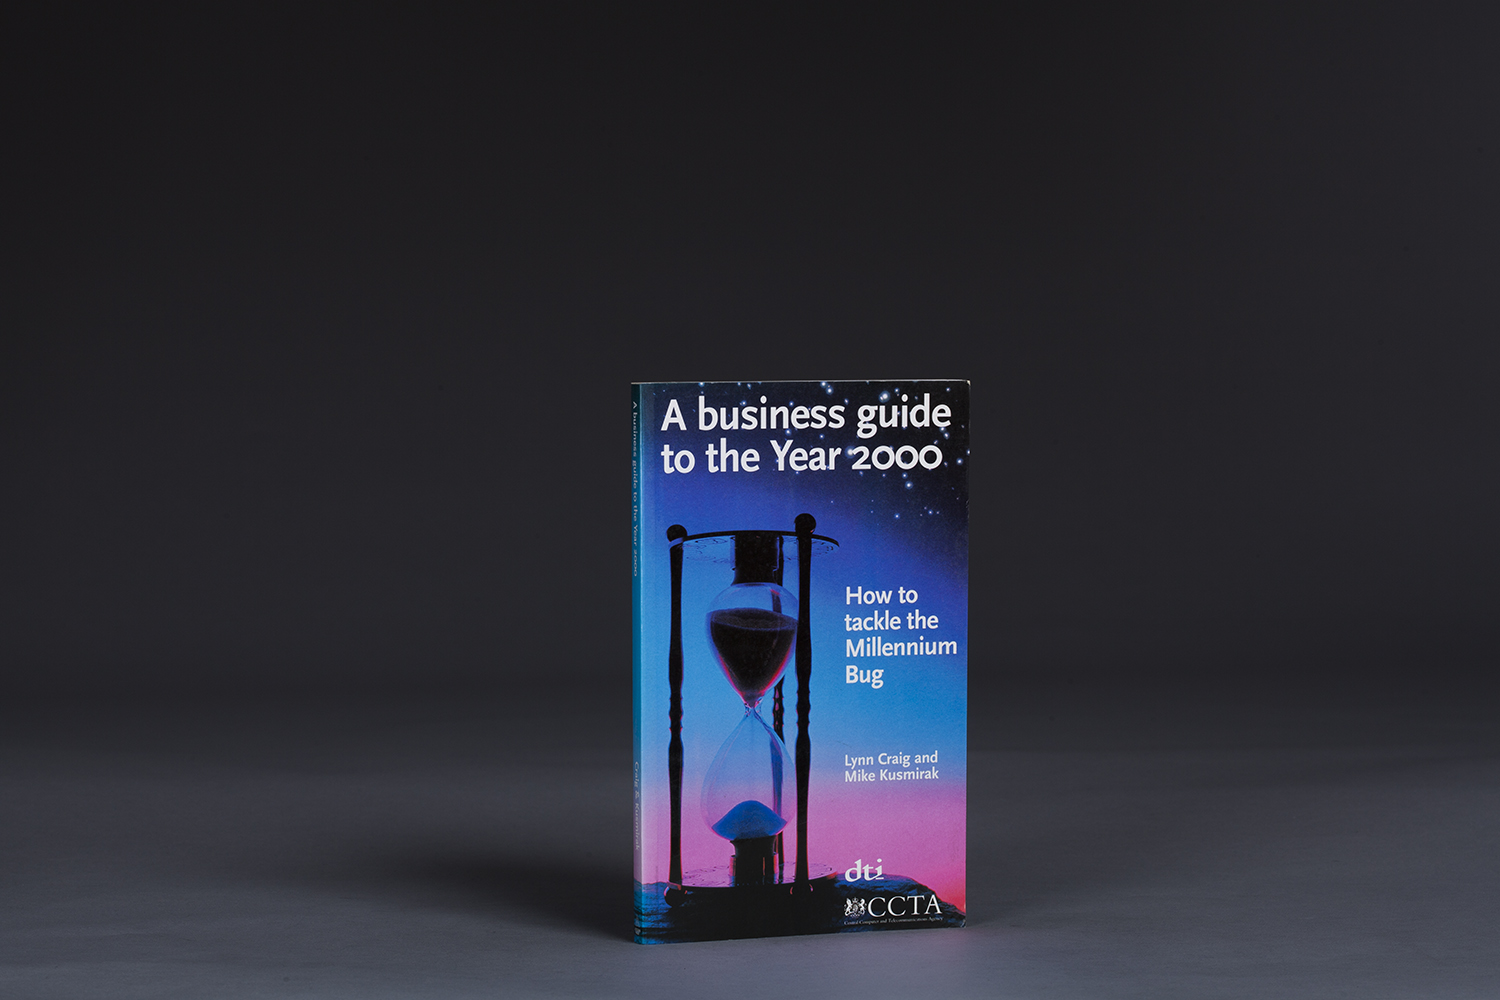 A Business Guide to the Year 2000 - 0508 Cover.jpg